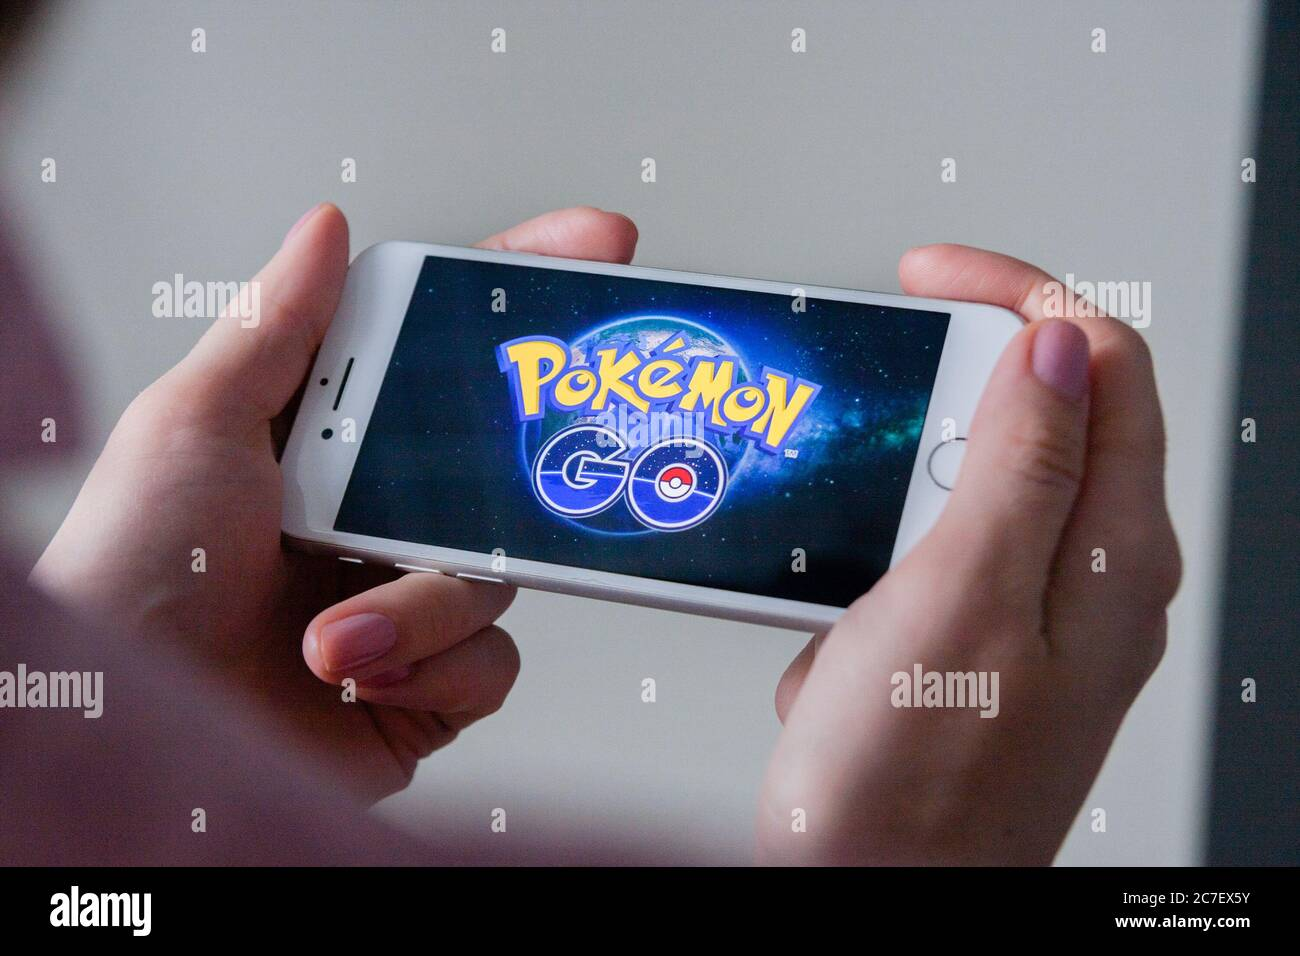 Los Angeles, California, USA - 8 March 2019: Hands holding a smartphone with Pokemon Go game on display screen, Illustrative Editorial Stock Photo